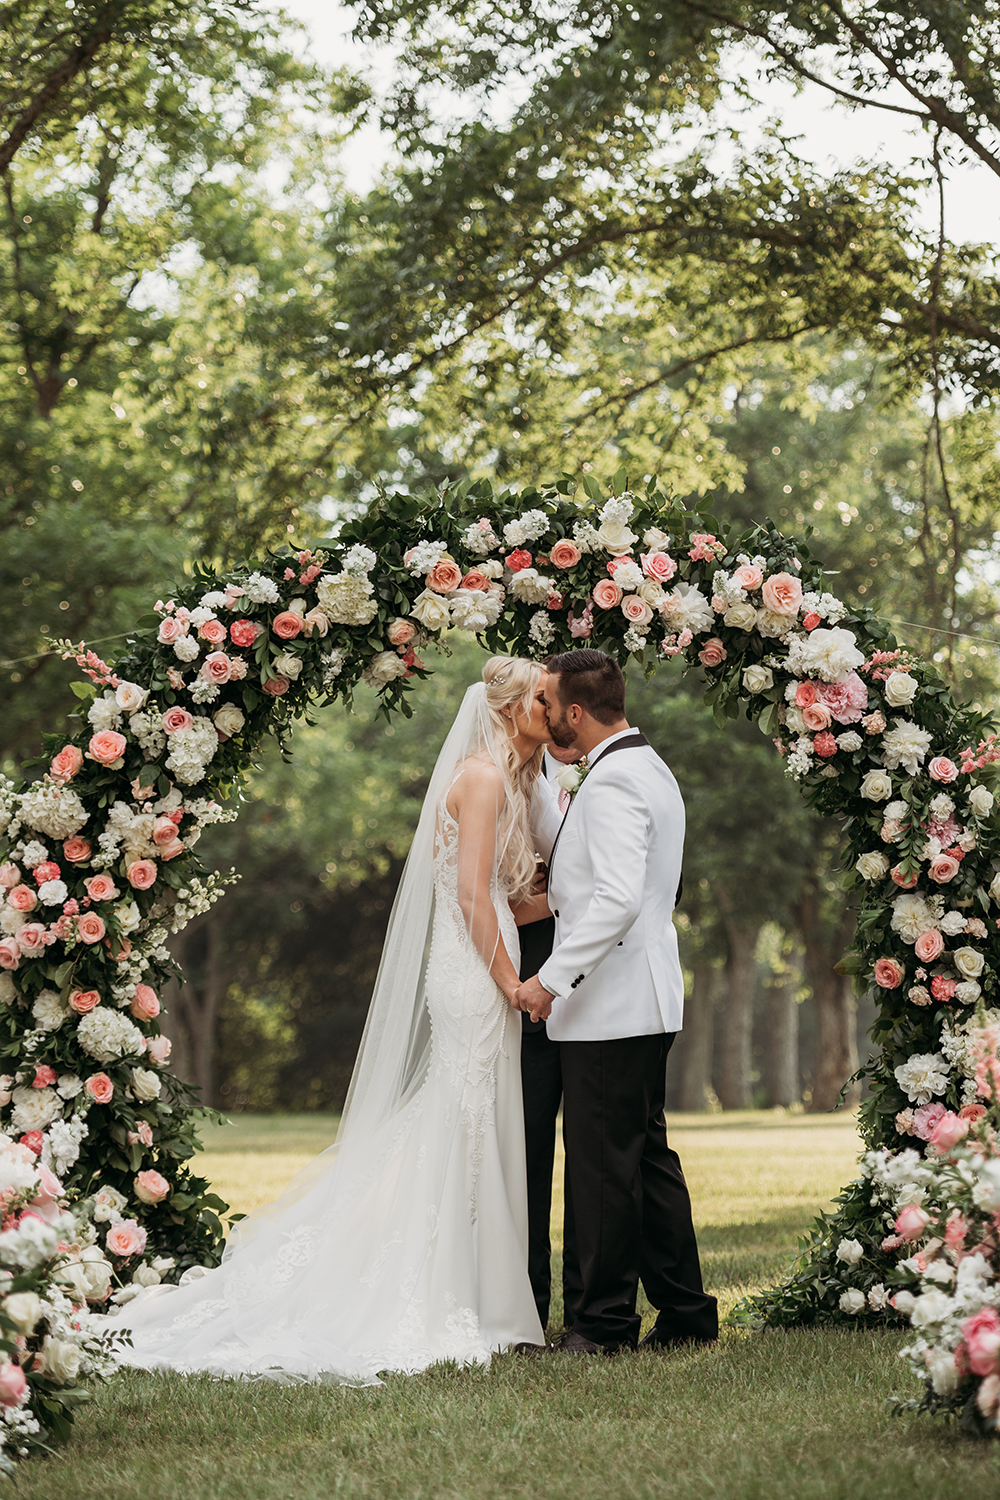 outdoor wedding ceremony - floral arch